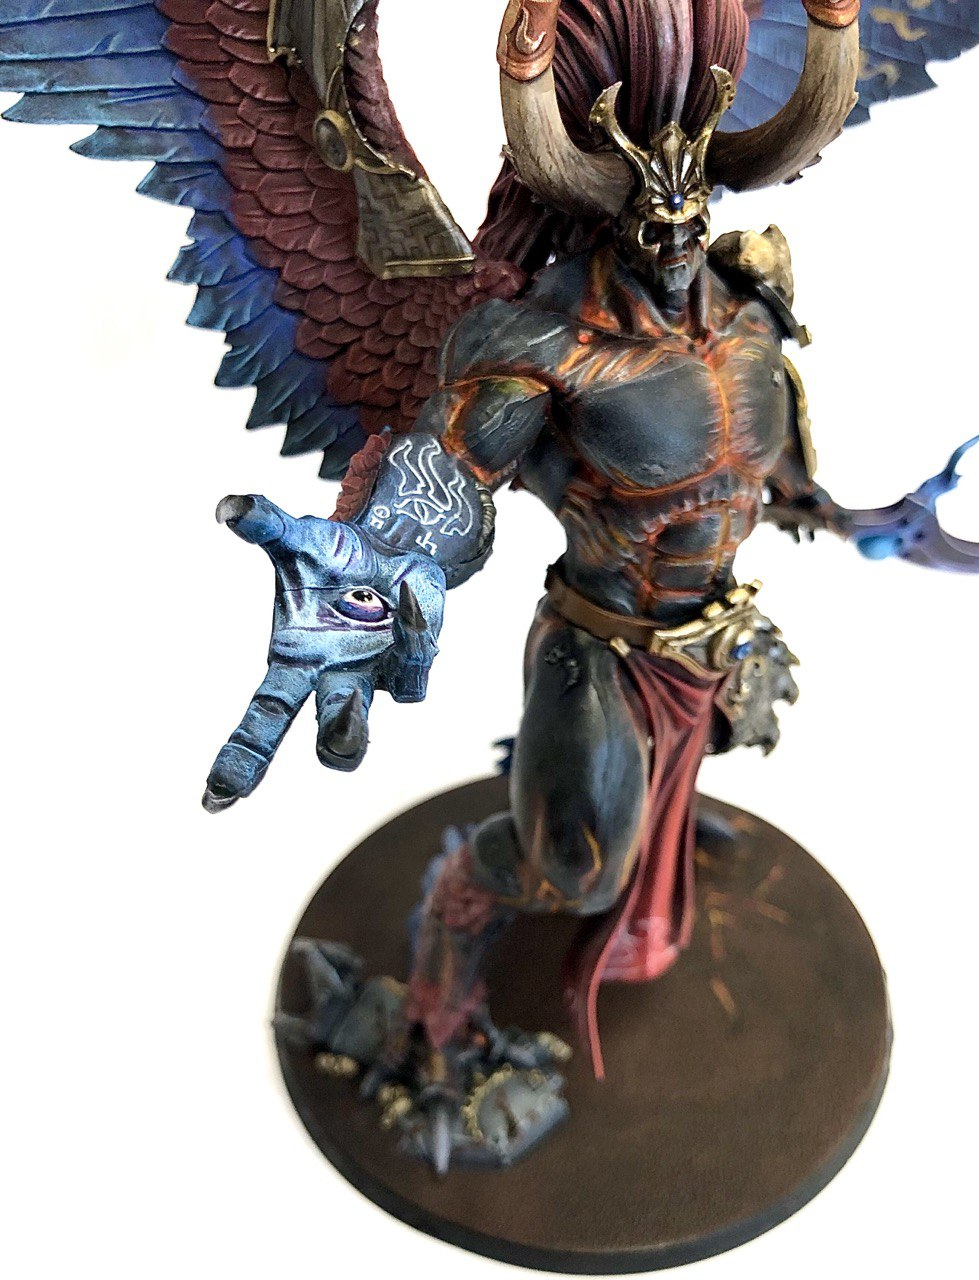 Miscellaneous: Magnus, the Cursed Son of the Emperor, photo #3